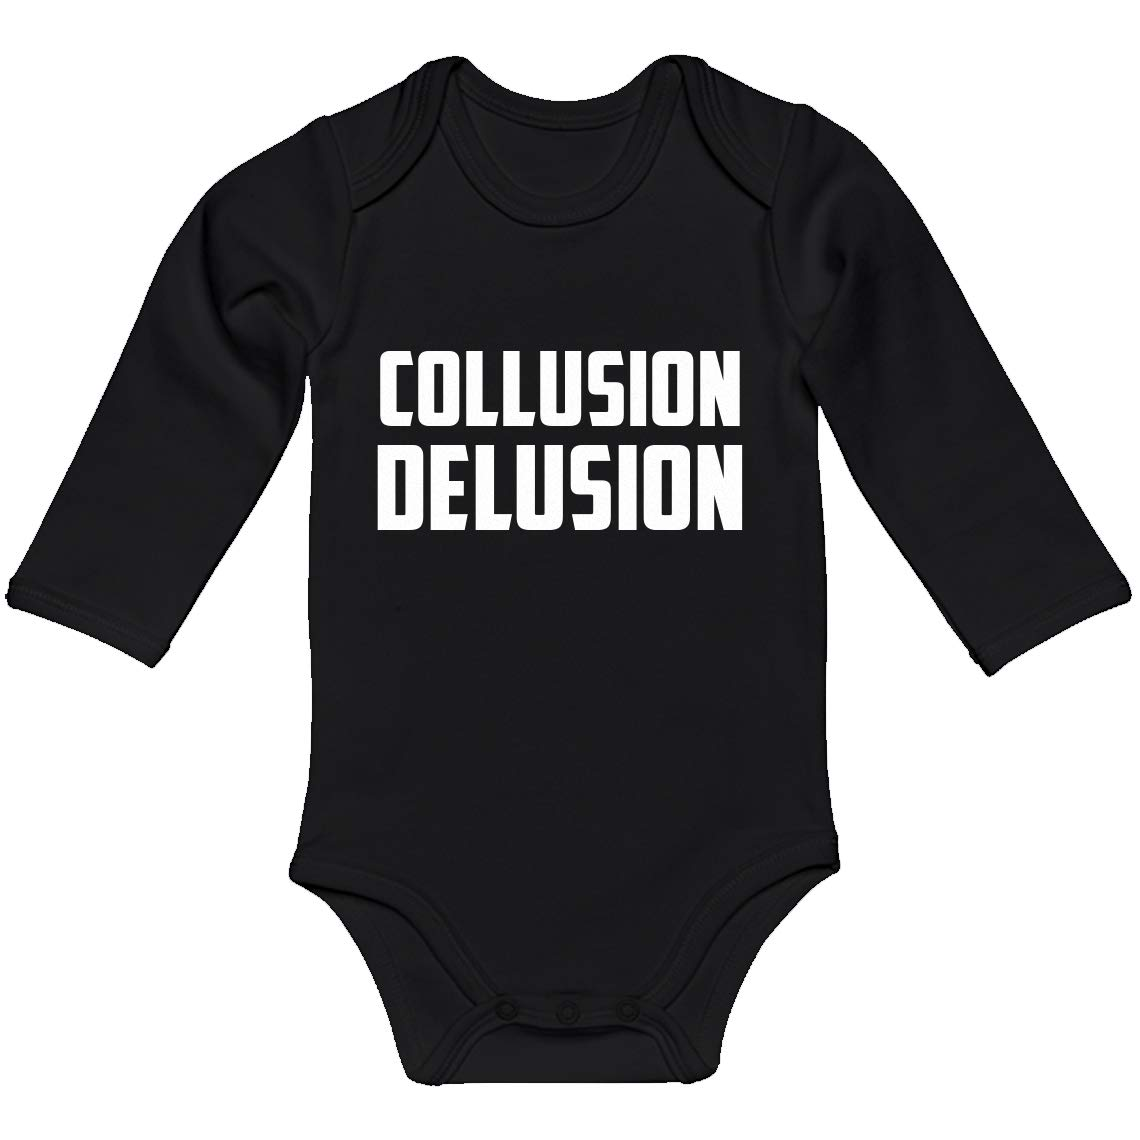 Indica Plateau Baby Romper Collusion Delusion 100/% Cotton Long Sleeve Infant Bodysuit